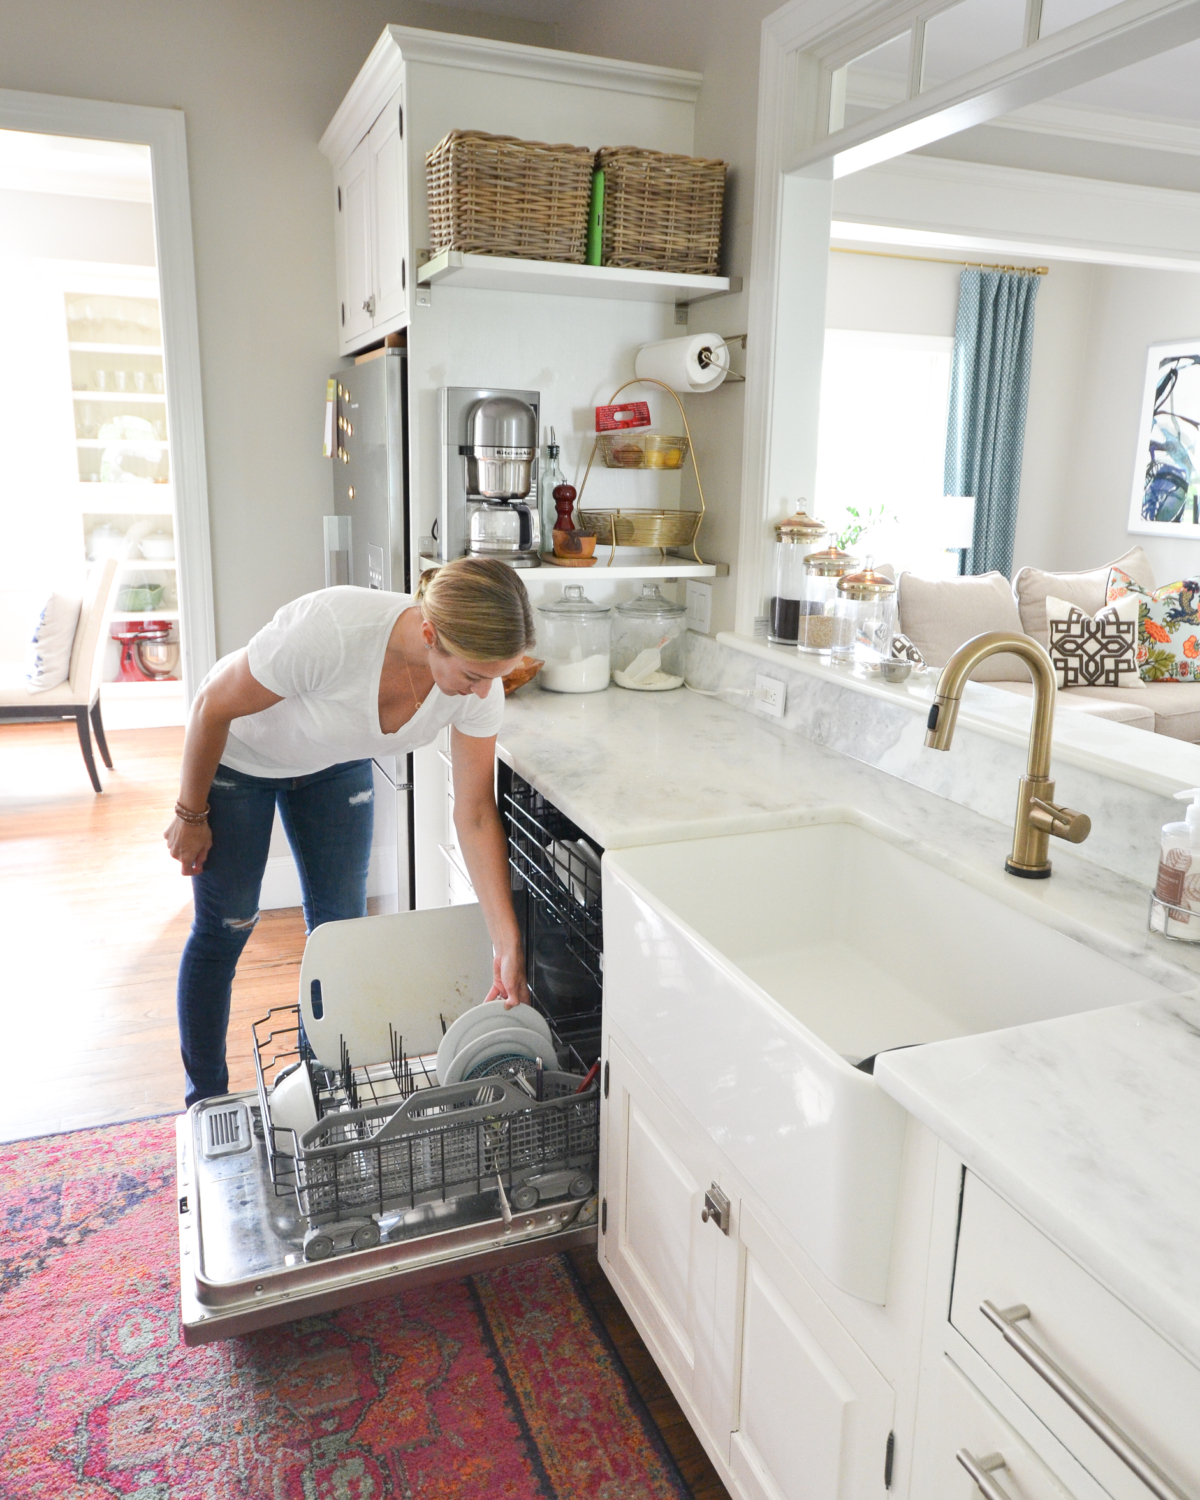 Nine easy tips for a clean home that you can use every day to easily keep your house looking and feeling tidy in mere minutes!